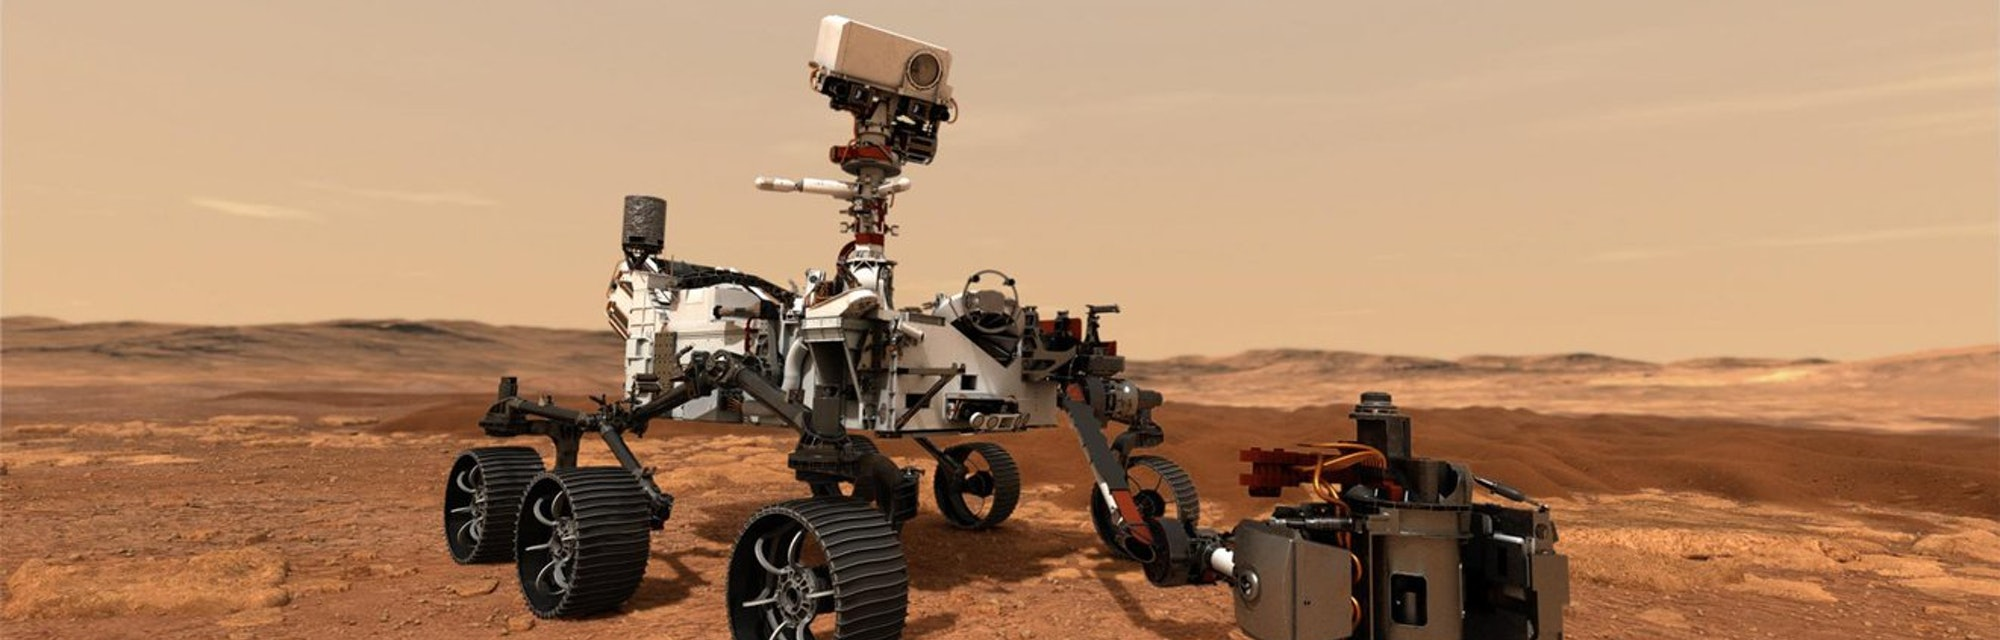 An illustration of the Perseverance rover on Mars.